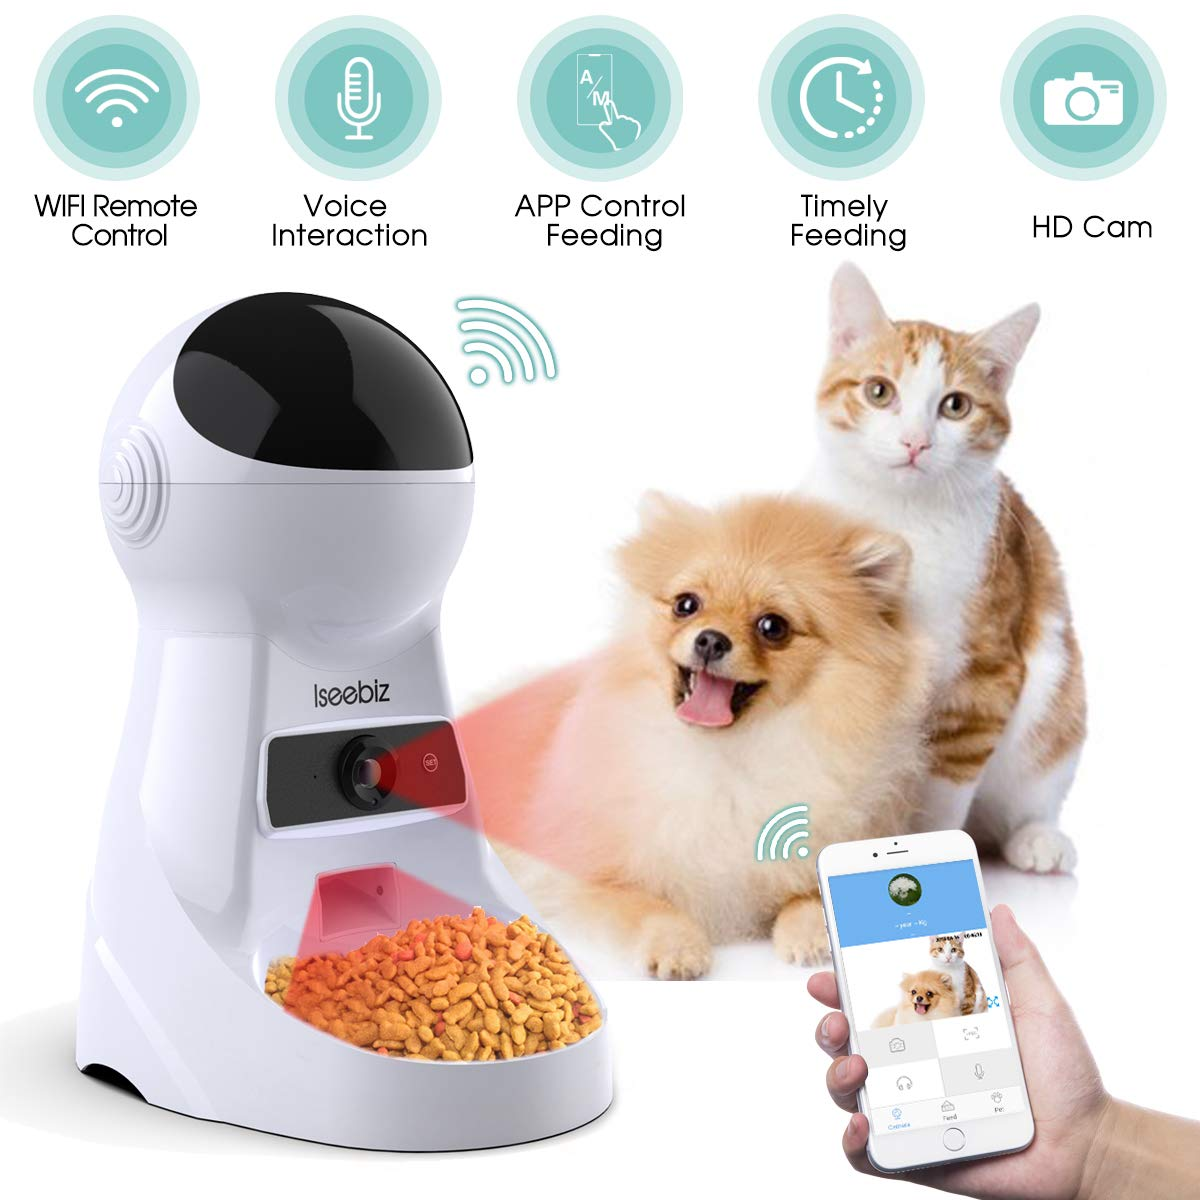 Iseebiz Automatic Pet Feeder with Camera, 3L App Control Smart Feeder Cat Dog Food Dispenser, 2-Way Audio, Voice Remind, Video Record, 6 Meals a Day for Medium Small Cats Dogs, Compatible with Alexa by Iseebiz